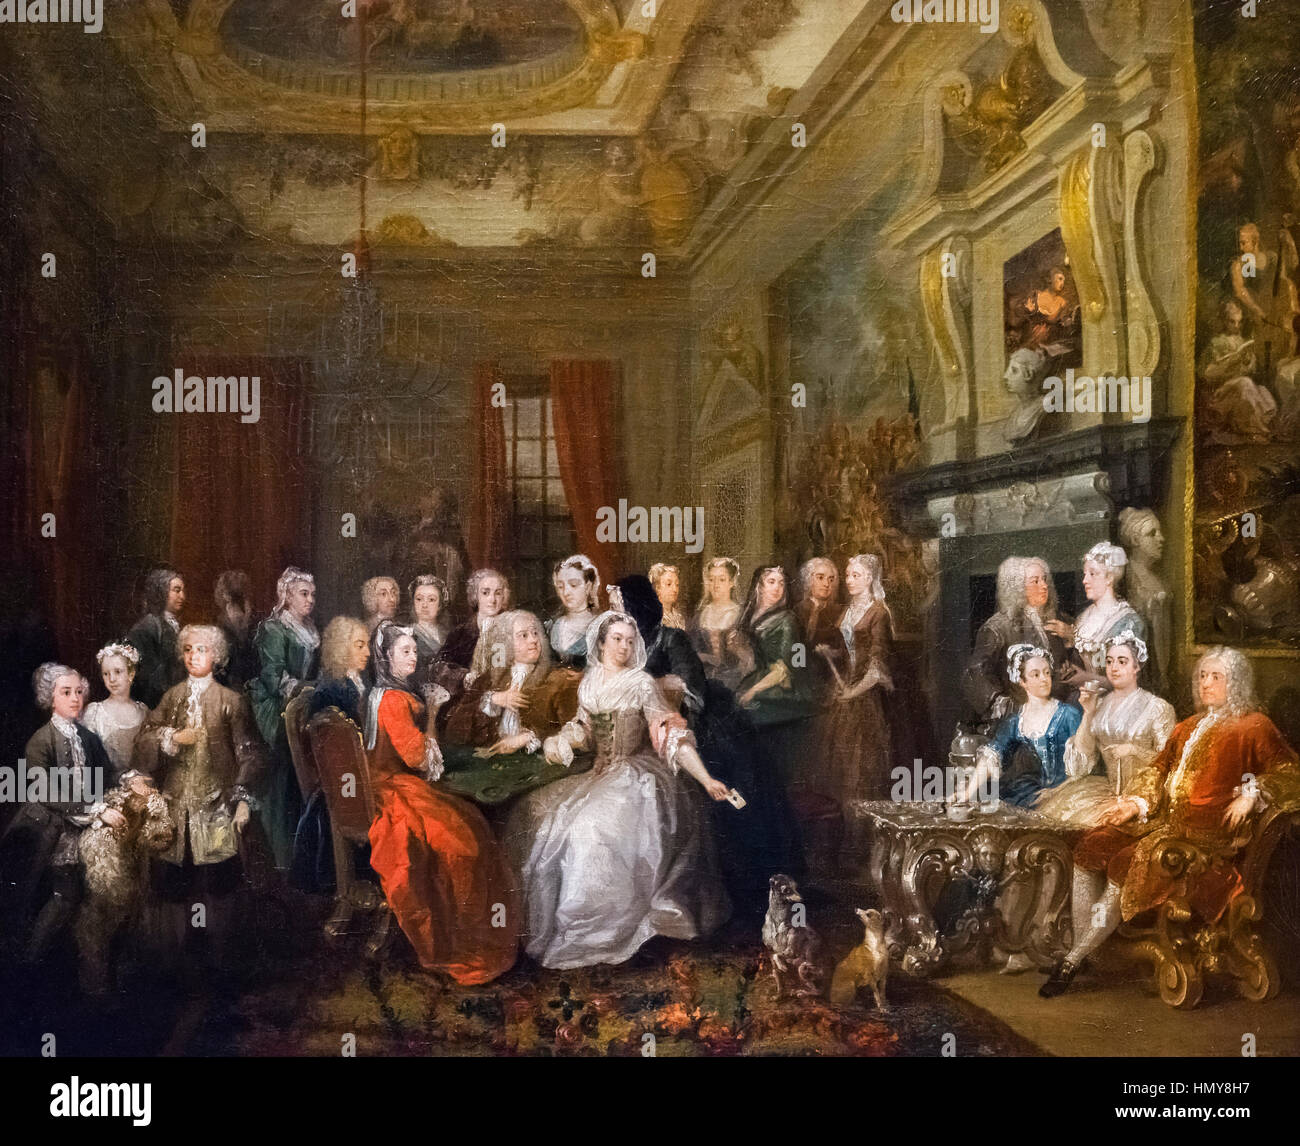 Hogarth painting. 'Assemblée générale à Wanstead House' par William Hogarth (1697-1764), Photo Stock